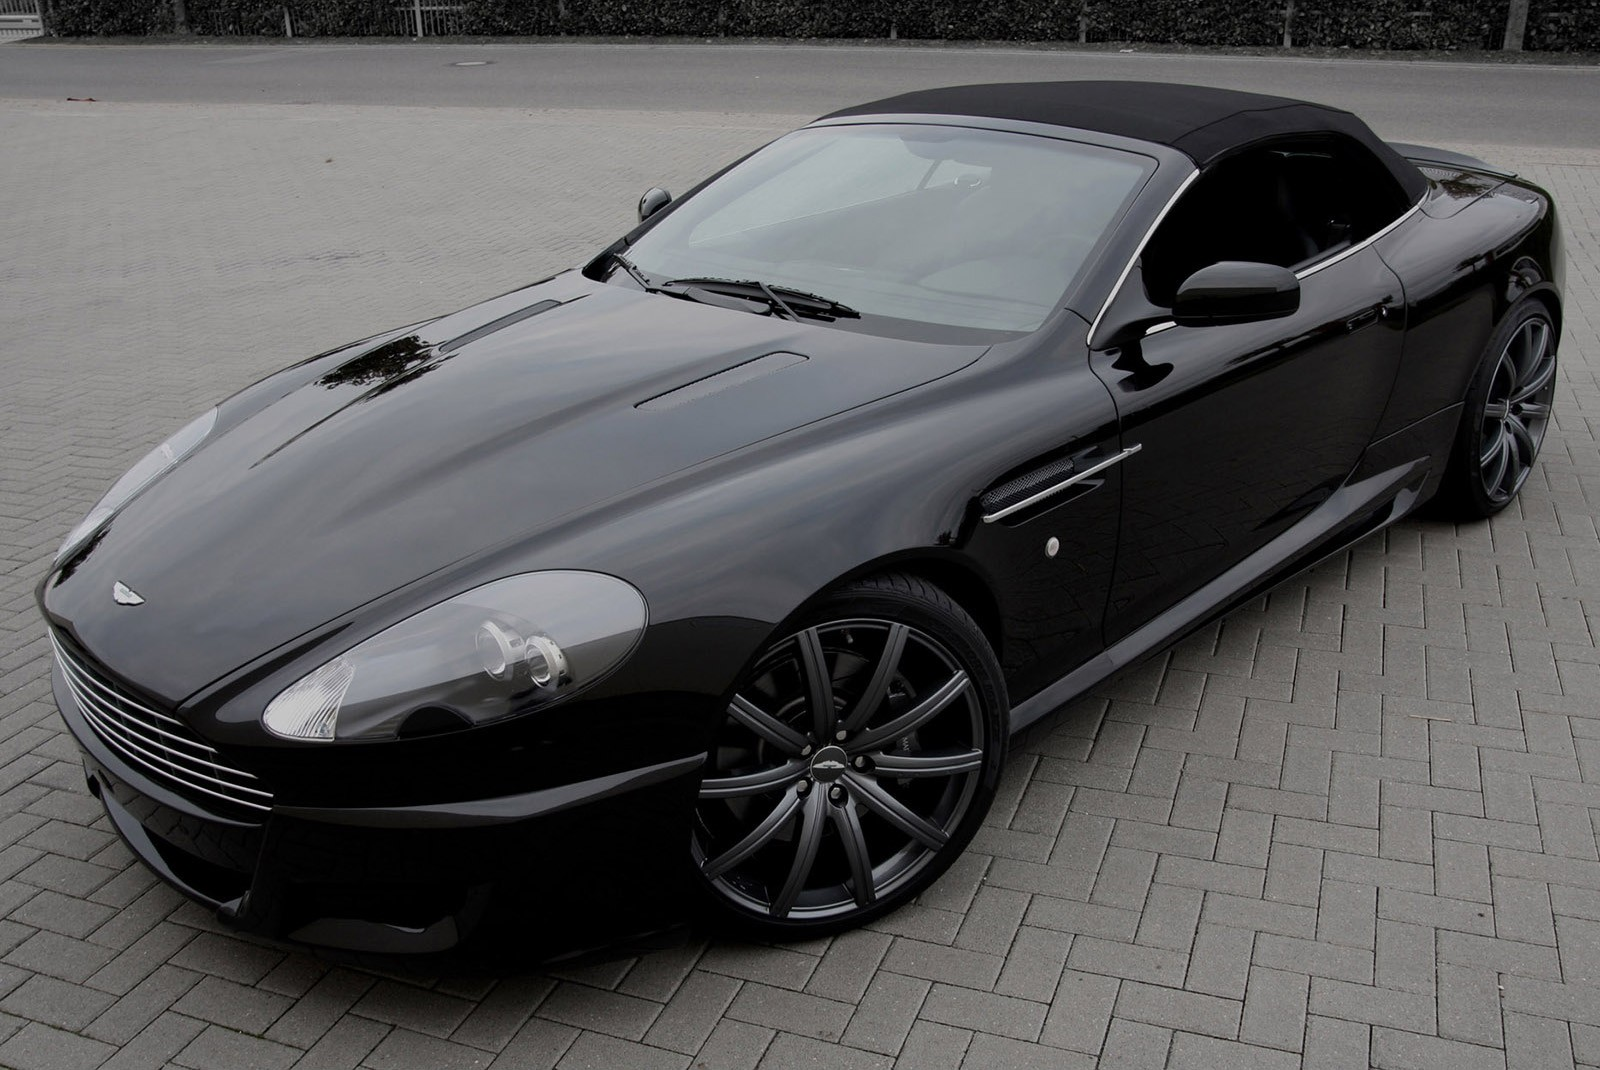 aston martin db9 volante specs 2010 2011 2012 autoevolution. Black Bedroom Furniture Sets. Home Design Ideas